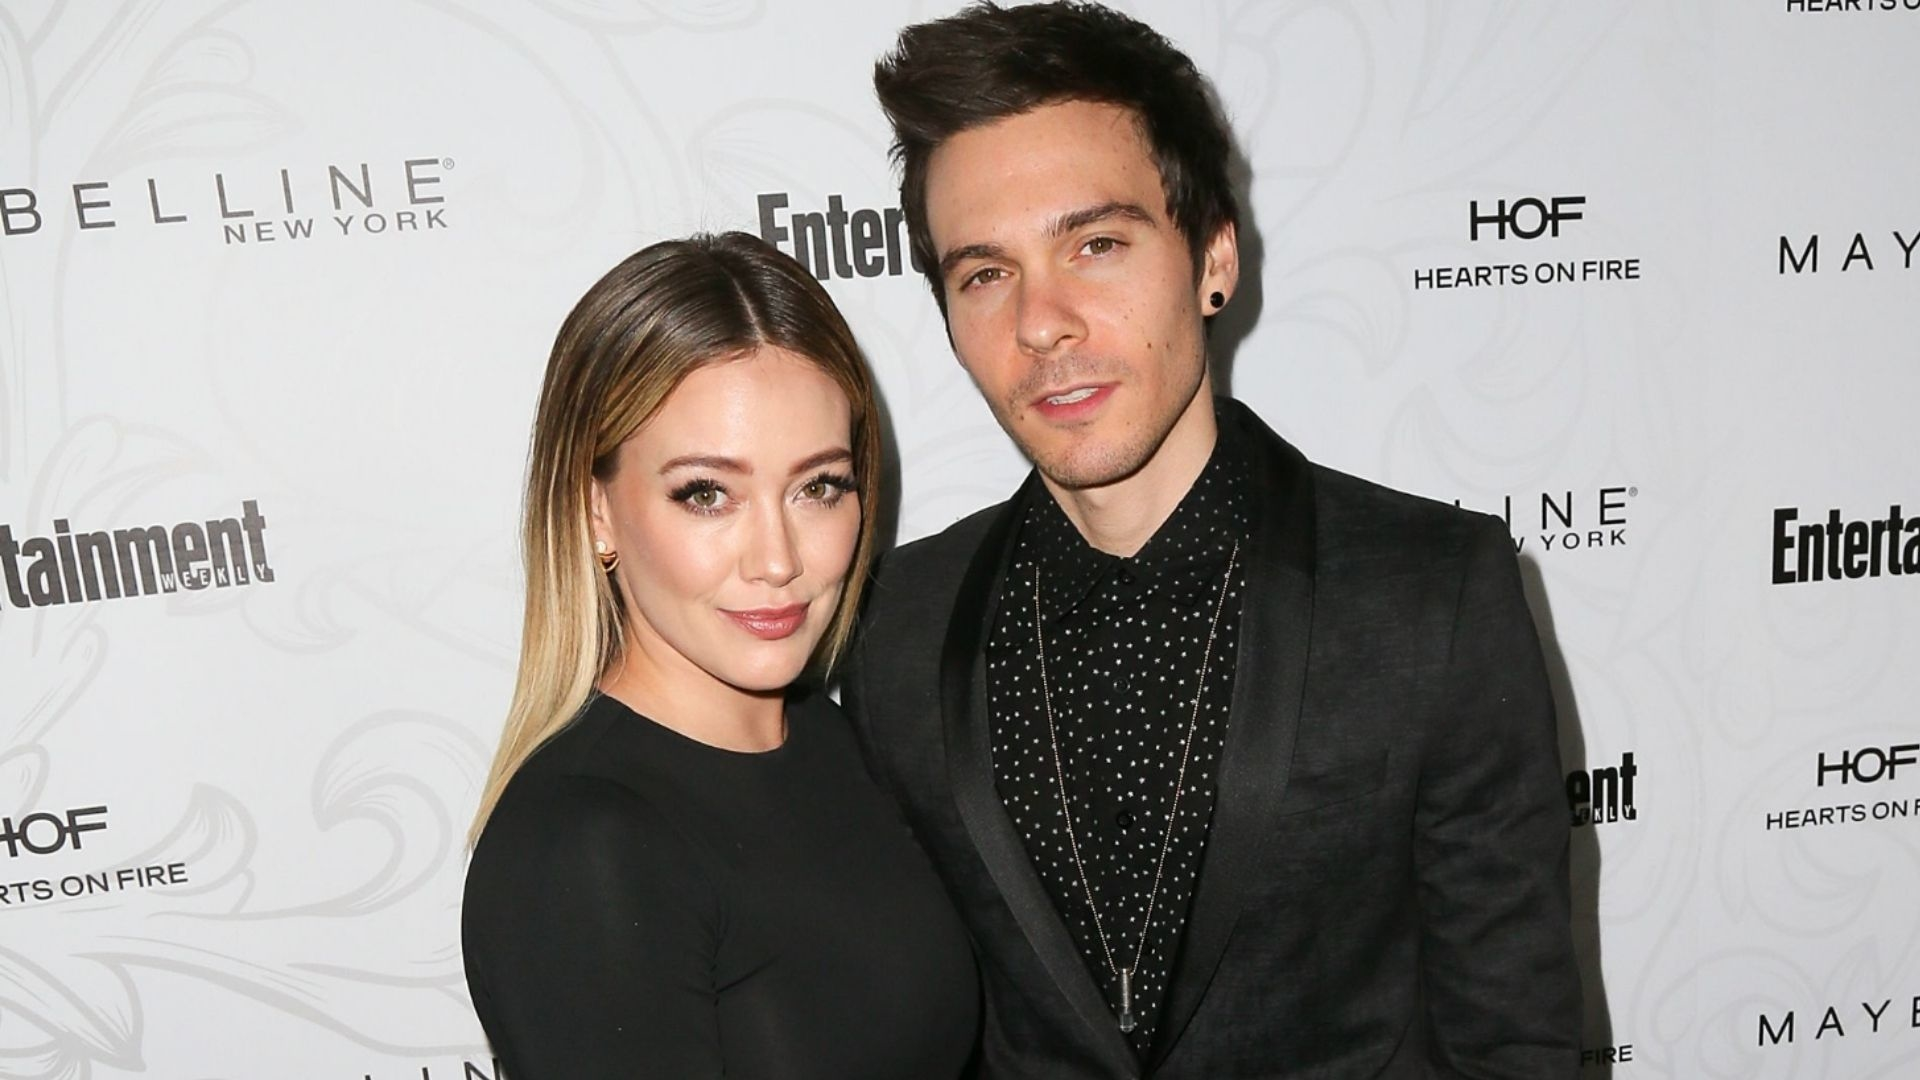 Hilary Duff Just Got Married In Secret In Los Angeles